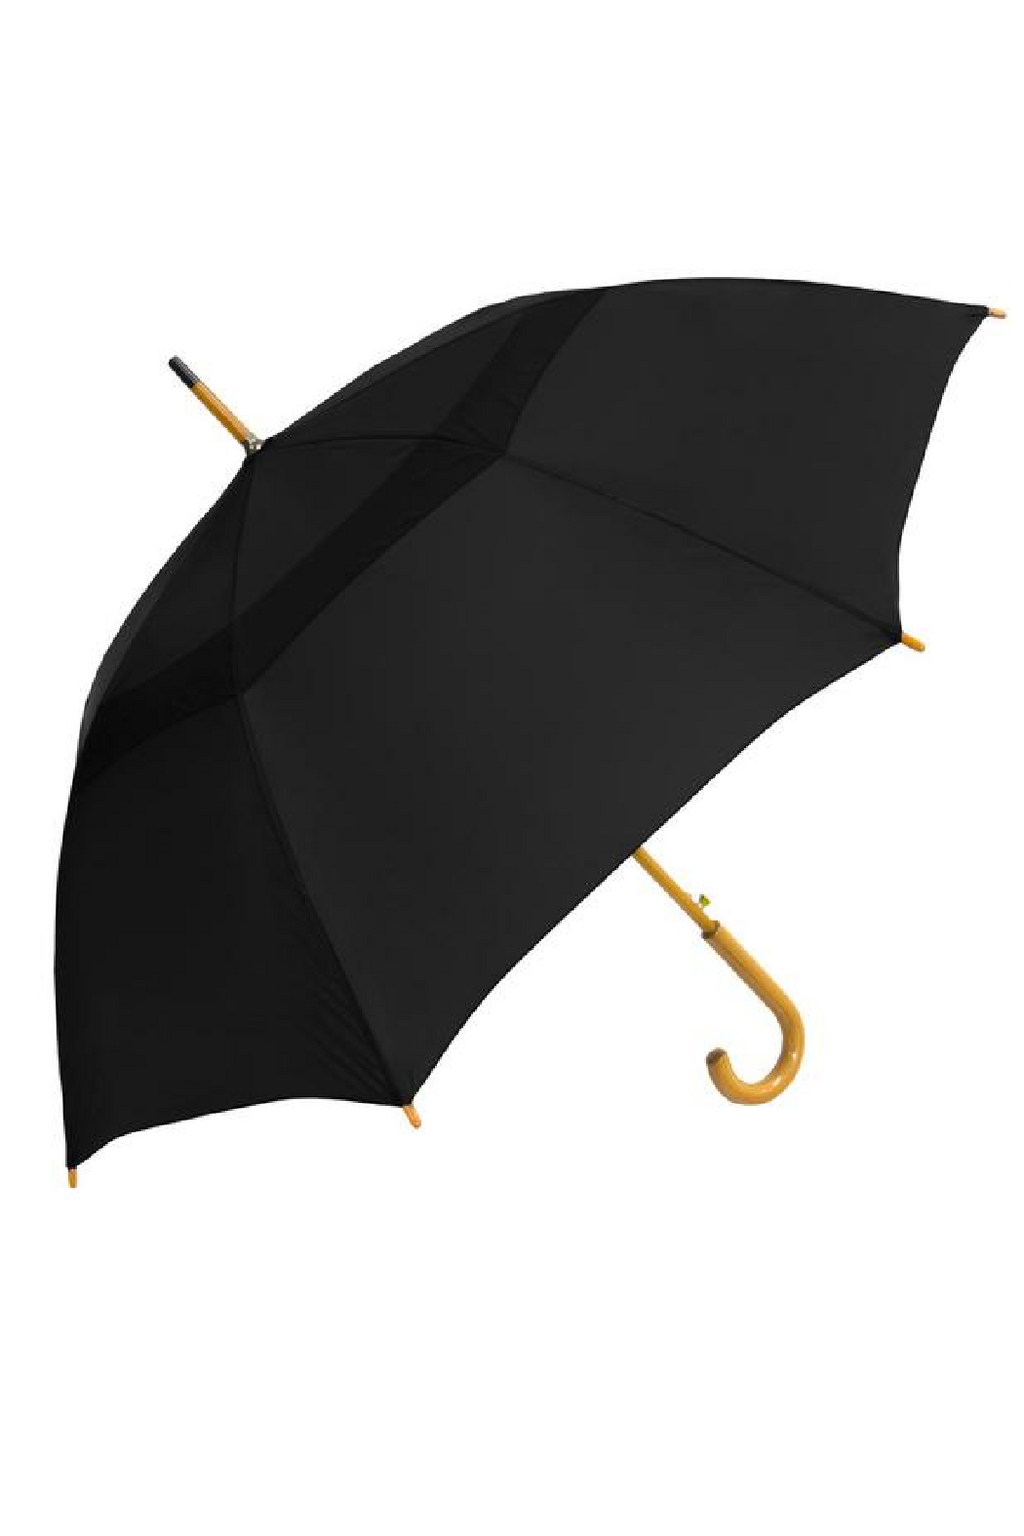 Vented Urban Brolly Umbrella